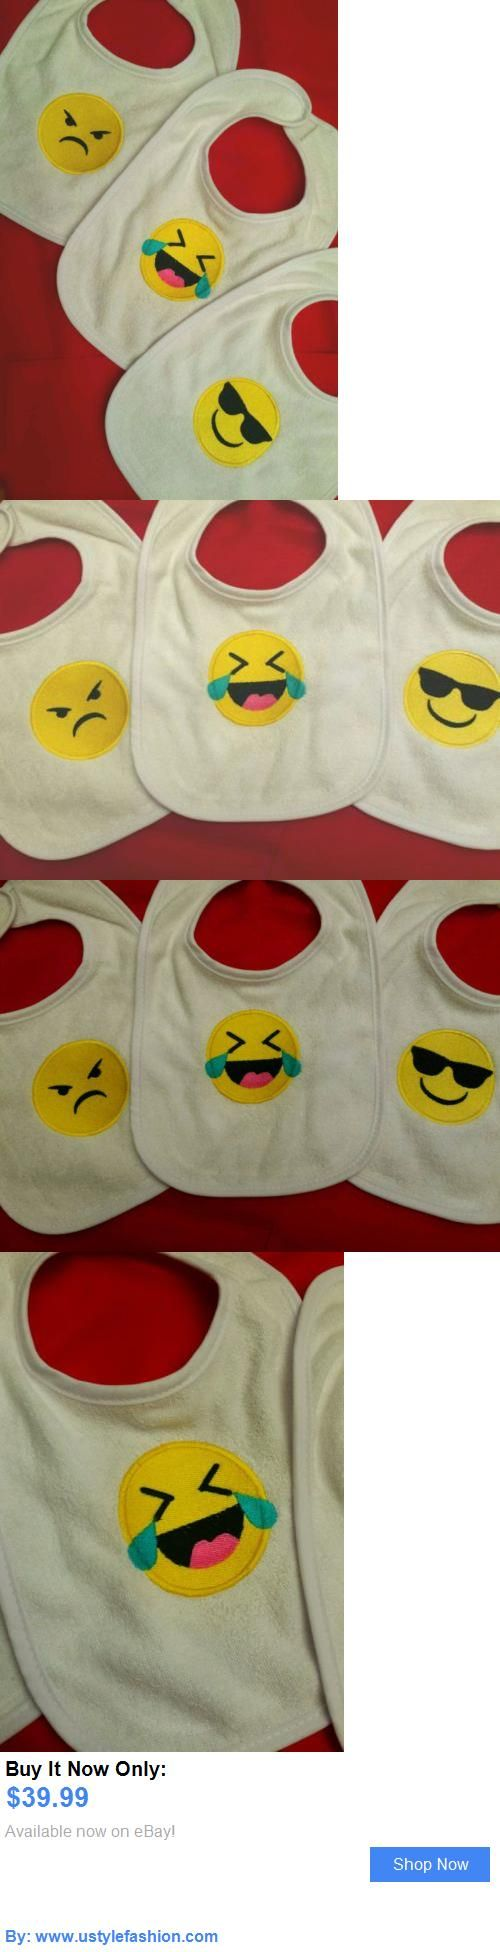 Bibs: Baby Bibs Gift Set 3 Pc. Embroidered Emoji Emoticon Trendy Boutique Custom Gift! BUY IT NOW ONLY: $39.99 #ustylefashionBibs OR #ustylefashion